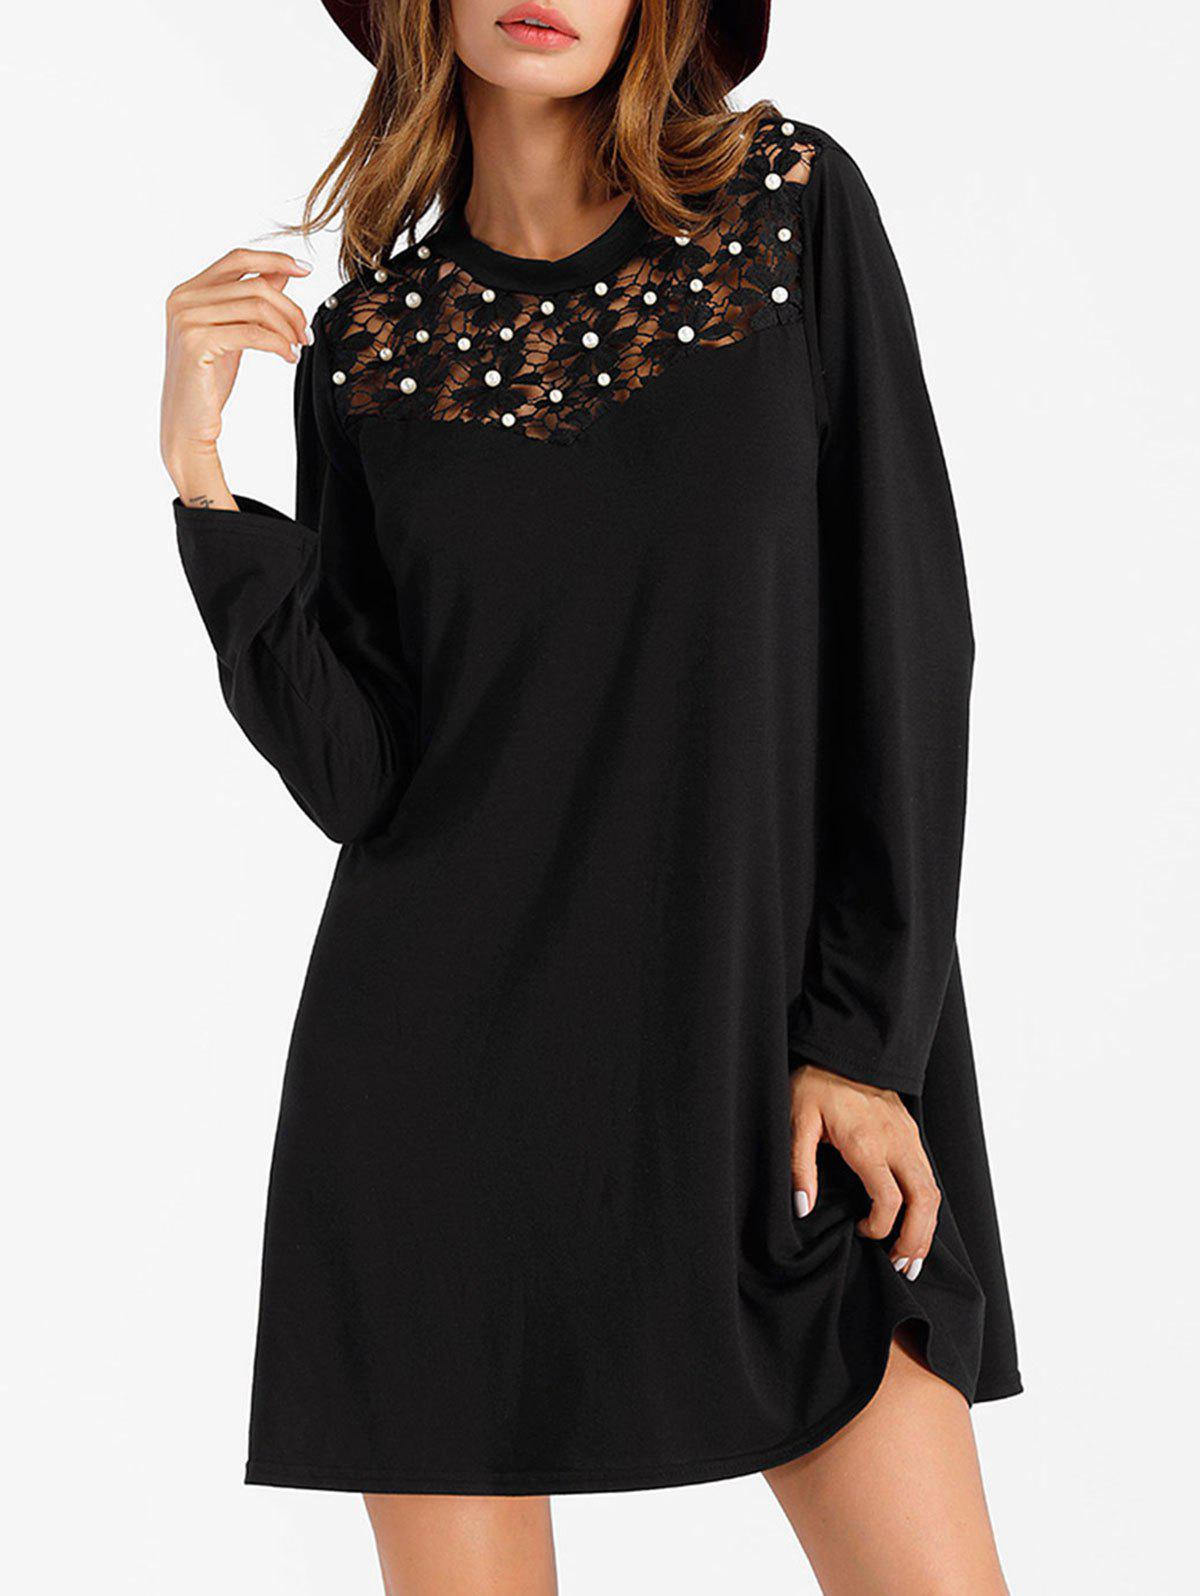 Lace Panel Full Sleeve Mini Shift Dress - BLACK S